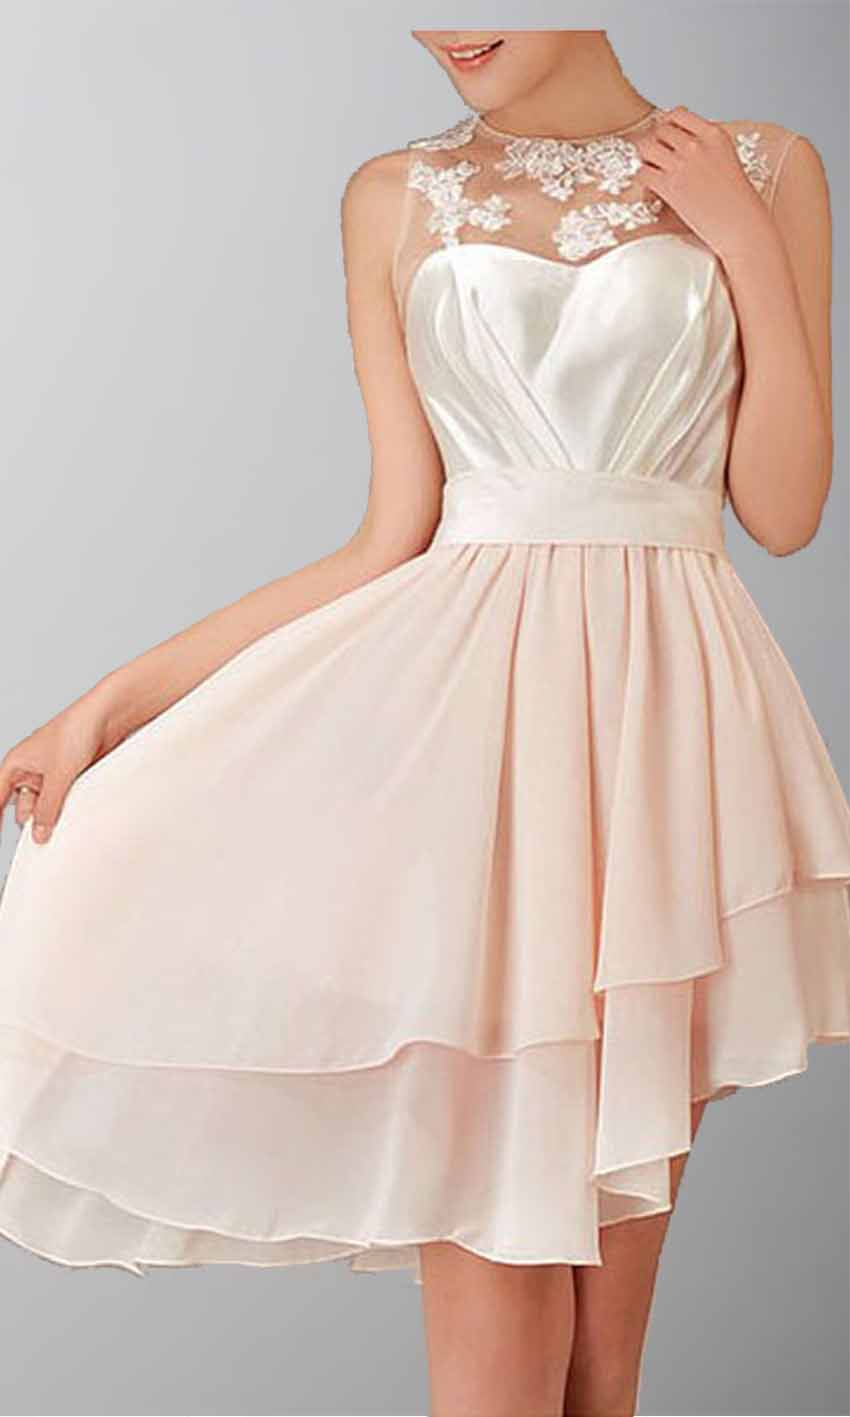 Lace Covered Bateau Neck Oblique Design Prom Dresses KSP010 [KSP010] - £89.00 : Cheap Prom Dresses Uk, Bridesmaid Dresses, 2014 Prom & Evening Dresses, Look for cheap elegant prom dresses 2014, cocktail gowns, or dresses for special occasions? kissprom.co.uk offers various bridesmaid dresses, evening dress, free shipping to UK etc.